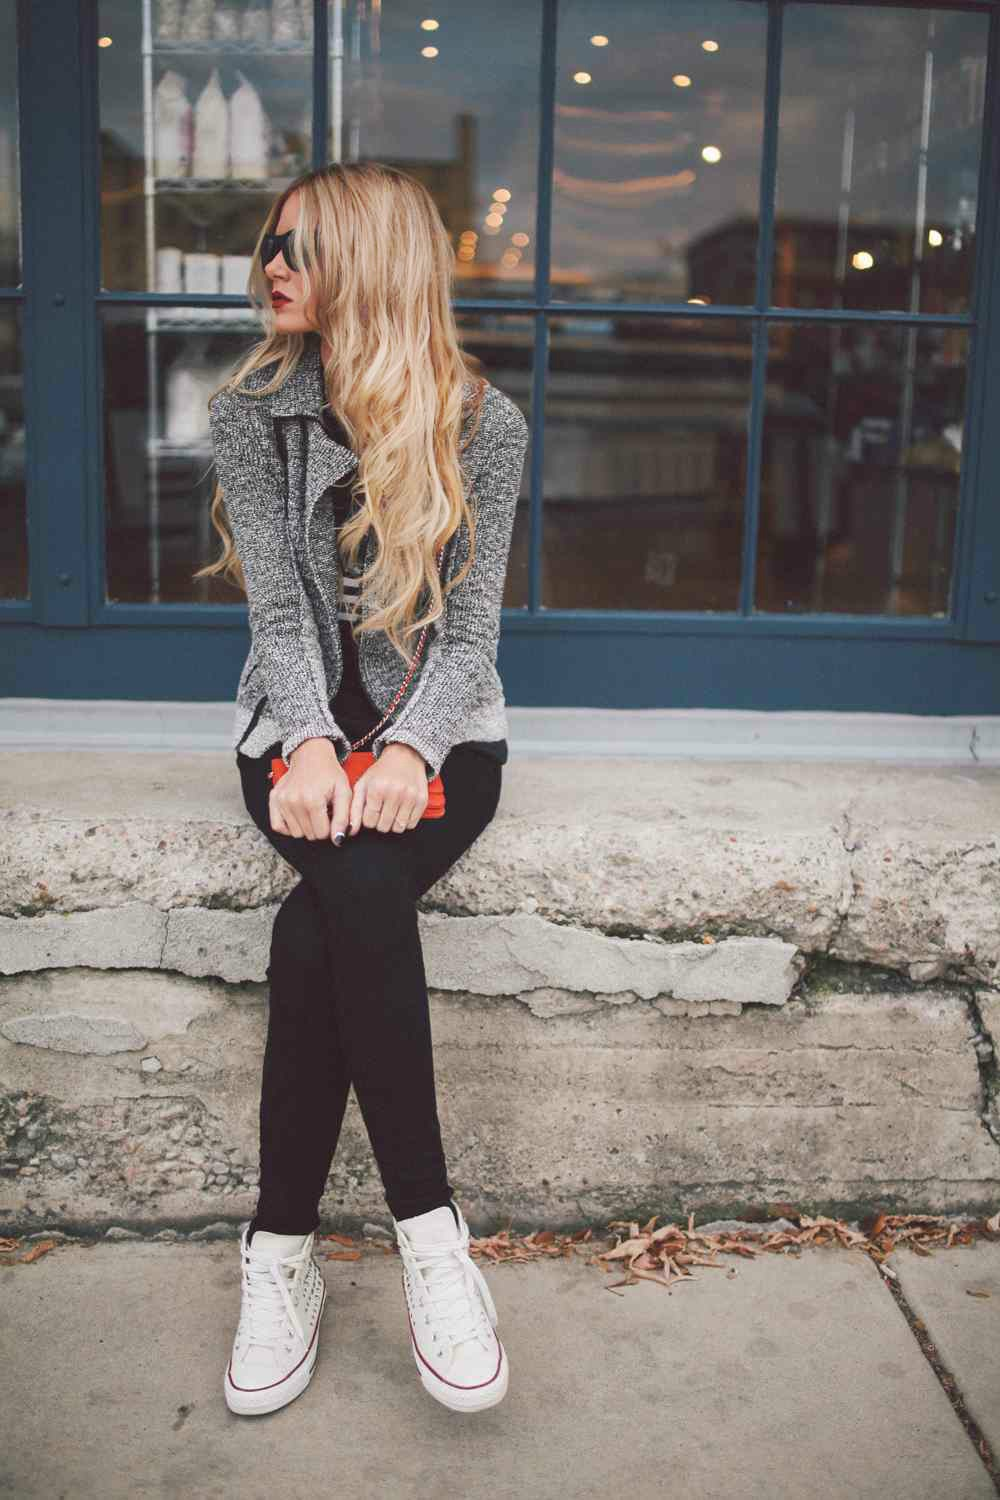 Image result for wear Converse women